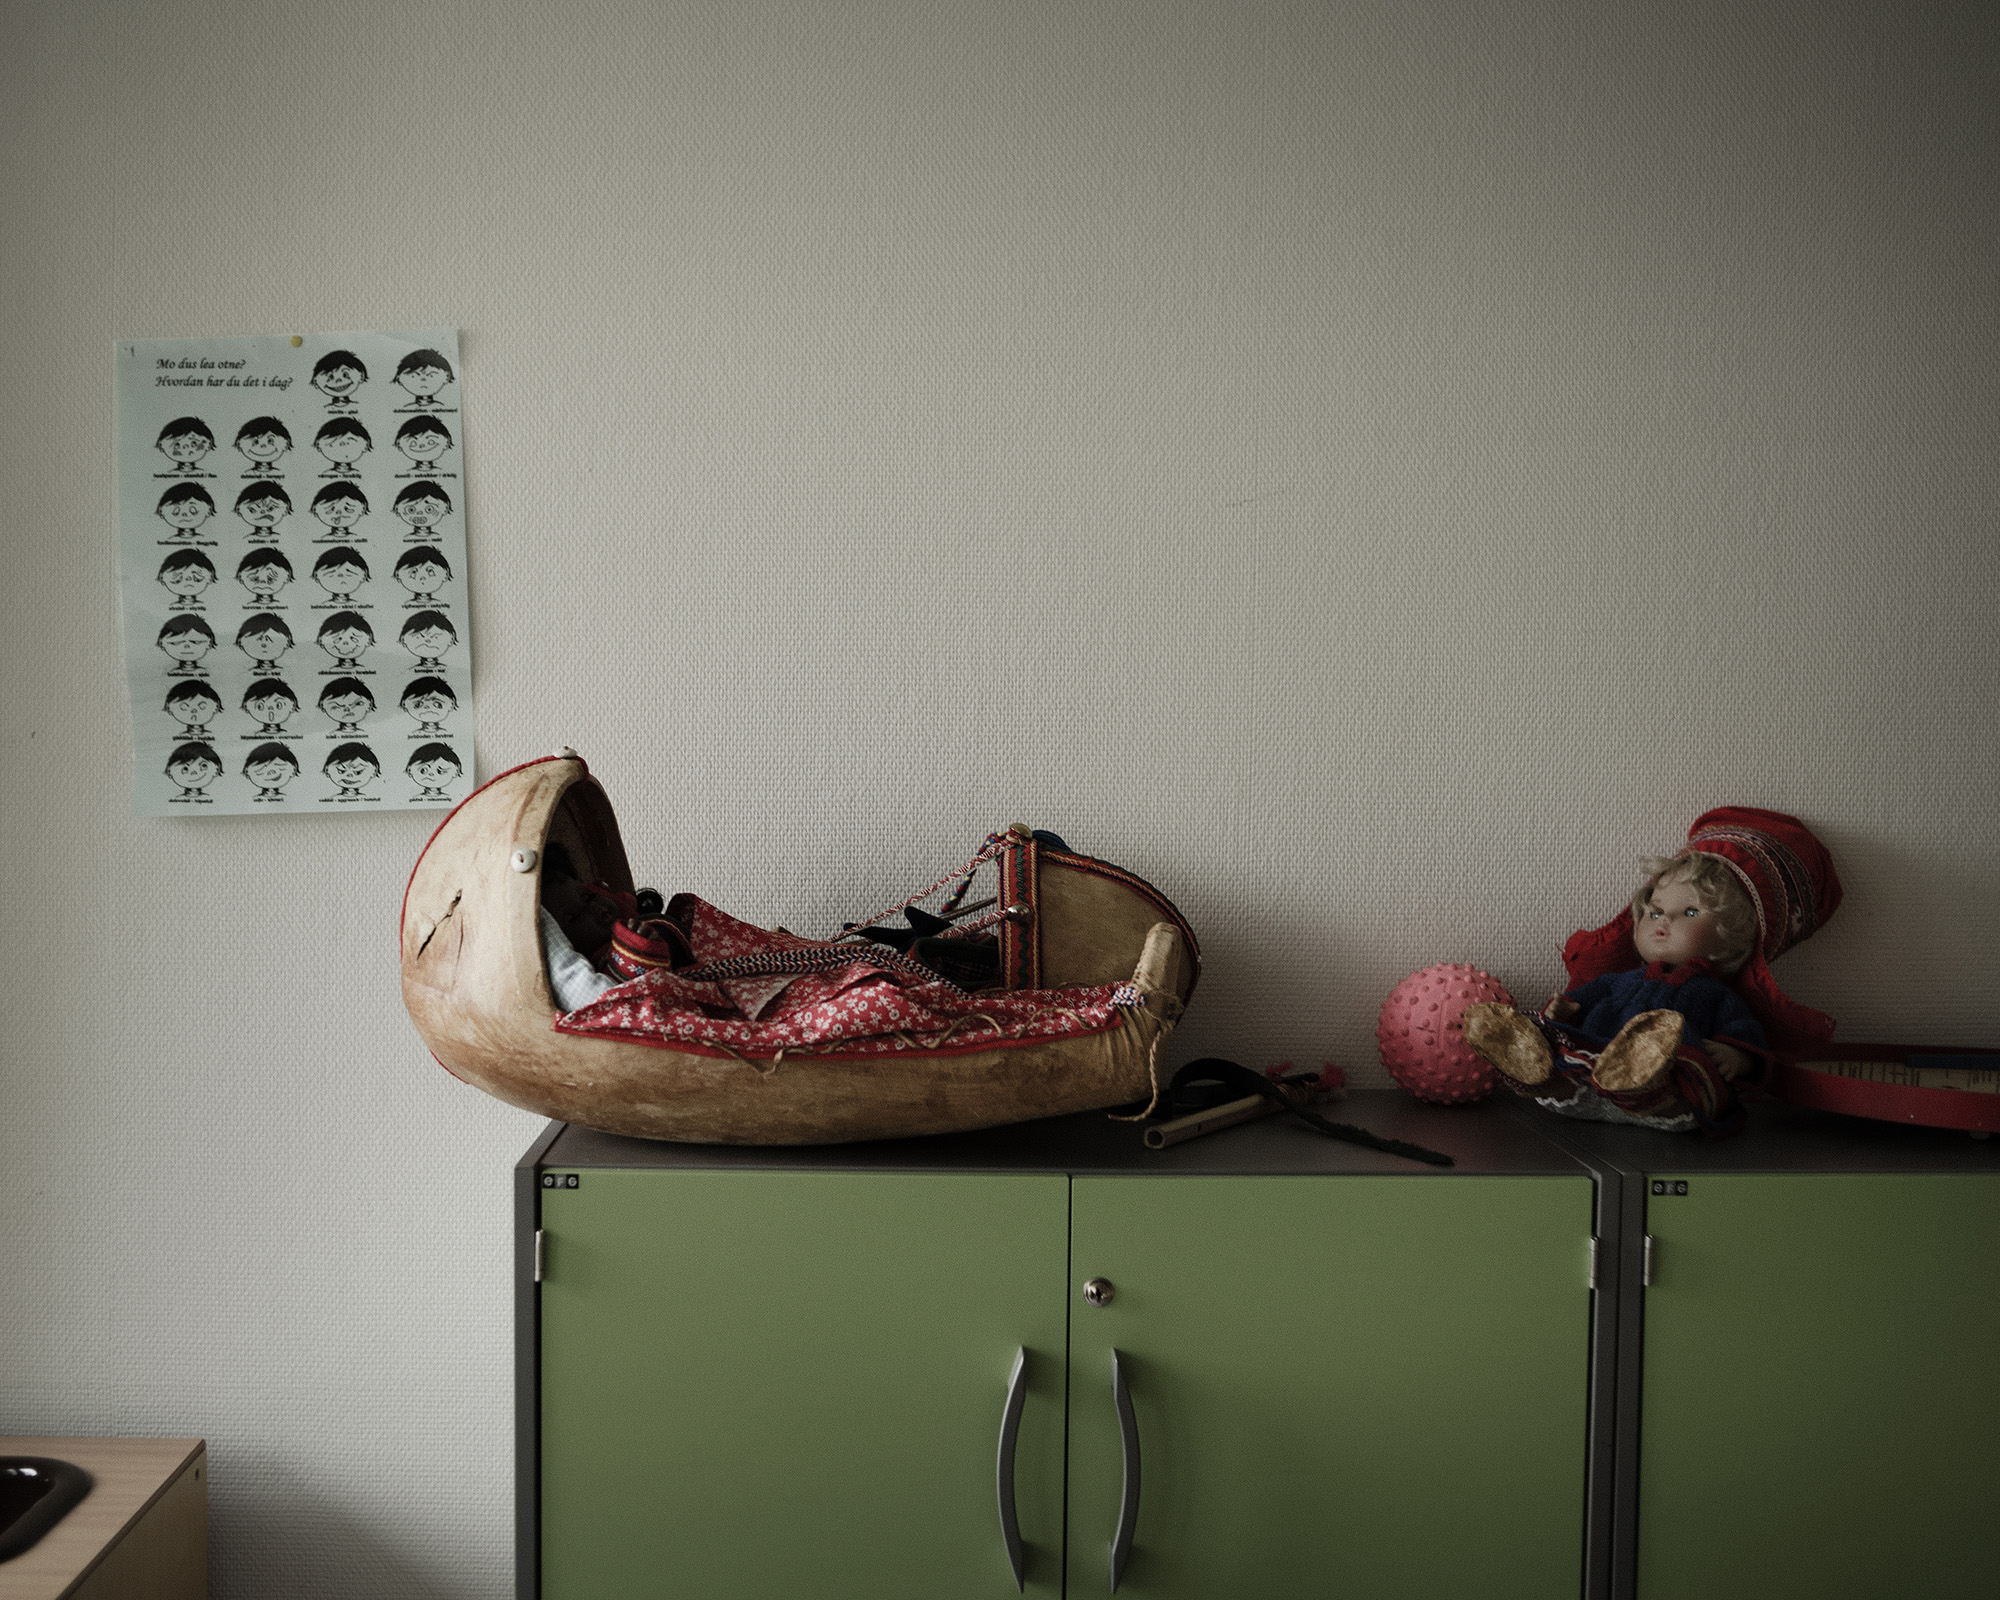 A doll rests in a komsa, a traditional cradle for Sami infants, in the family therapy room where therapists work with children in a playful setting.  Because of cultural pressures, Sami find it difficult to speak about mental health, and even more so in a language other than their native Sami. A Norwegian organization called SANKS (Sámi Norwegian National Advisory Unit on Mental Health and Substance Use) offers a template for Sami-specific mental health treatment. (Camilla Andersen/GroundTruth)